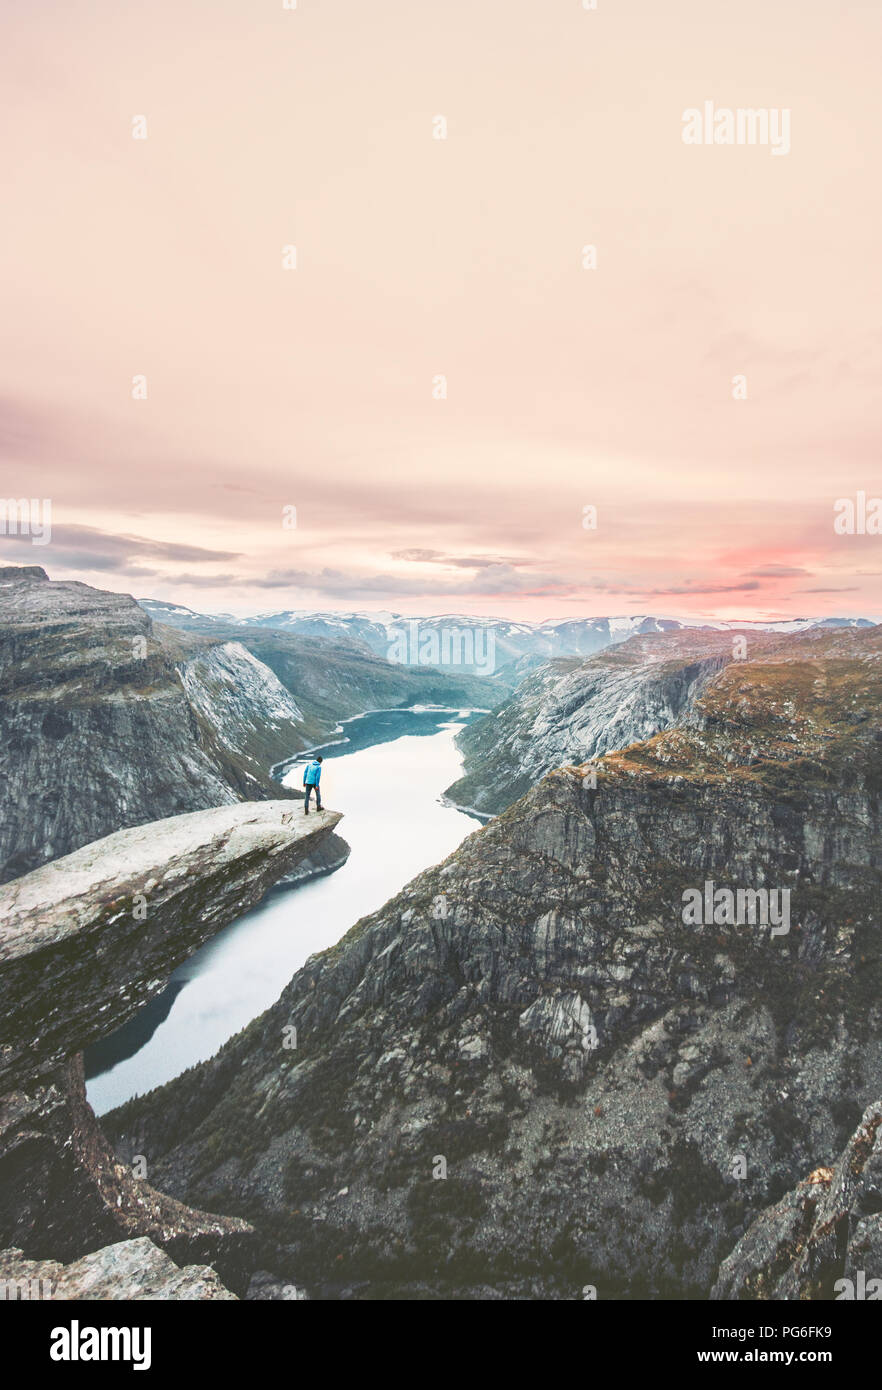 Traveler man on the edge of Trolltunga cliff  traveling in Norway adventure lifestyle extreme vacations outdoor rocky mountains over clouds landscape  - Stock Image